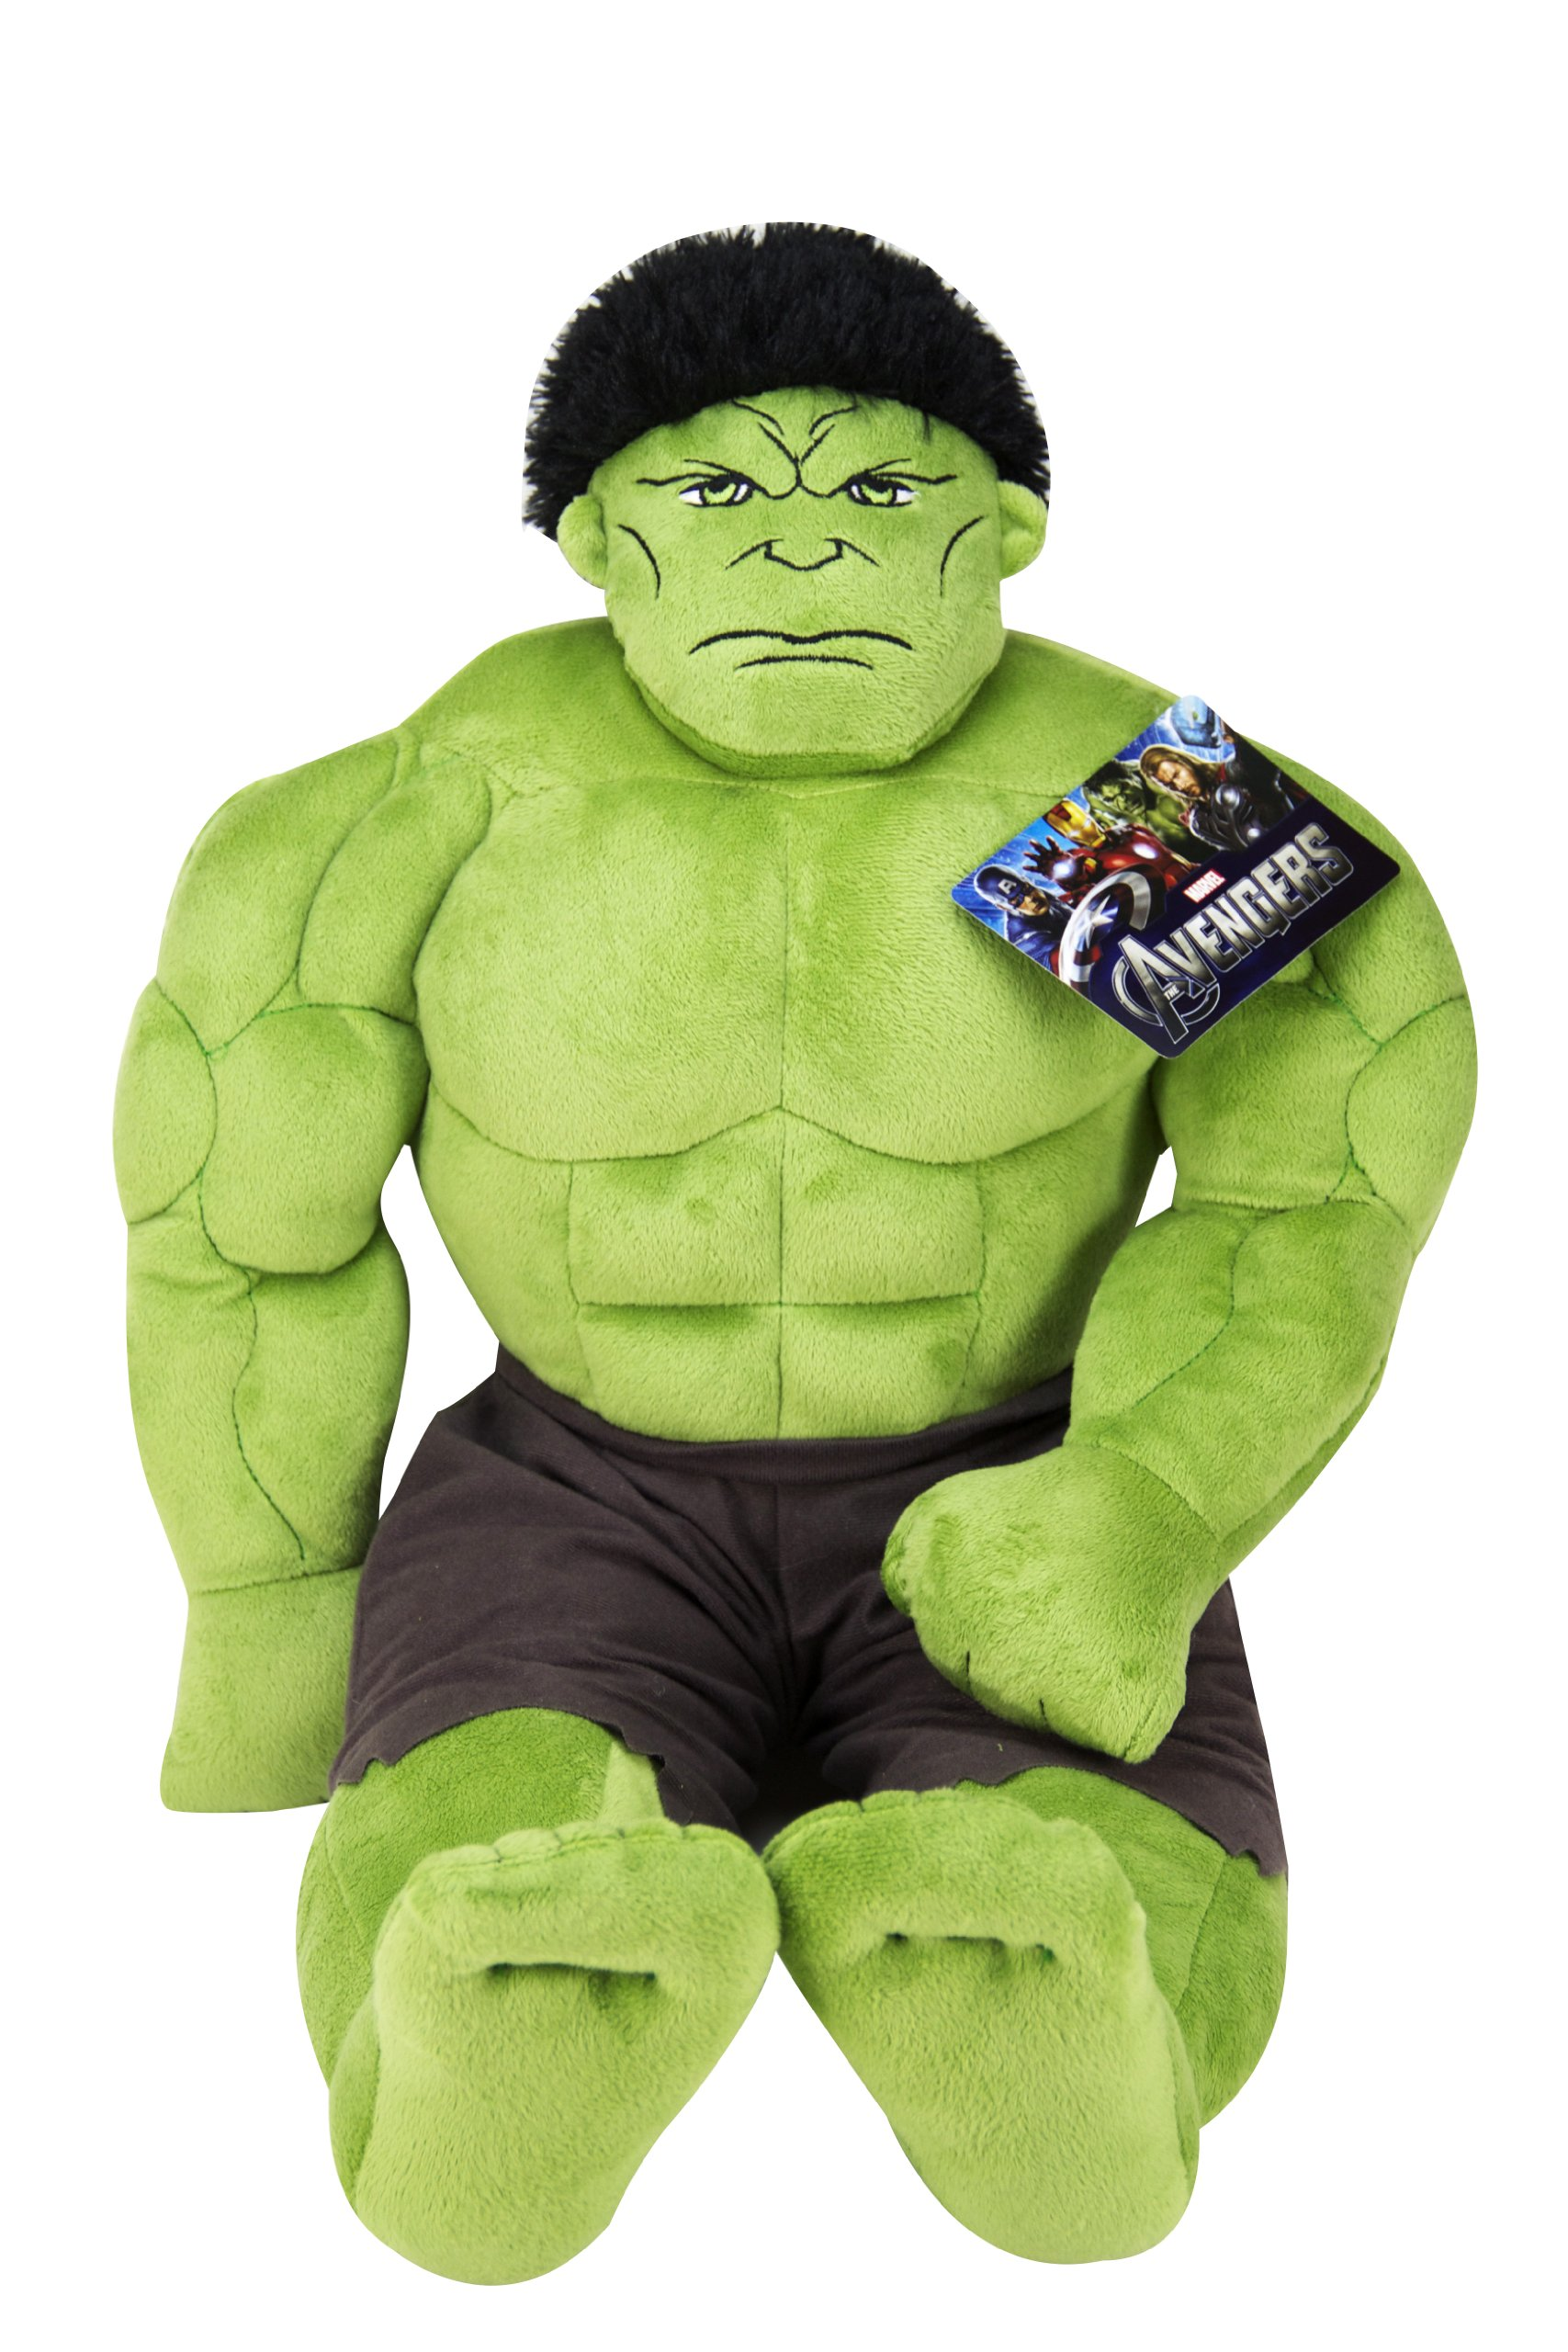 Jay Franco Avengers Plush Stuffed Hulk Pillow Buddy - Super Soft Polyester Microfiber, 23 inch (Official Marvel Product) by Jay Franco